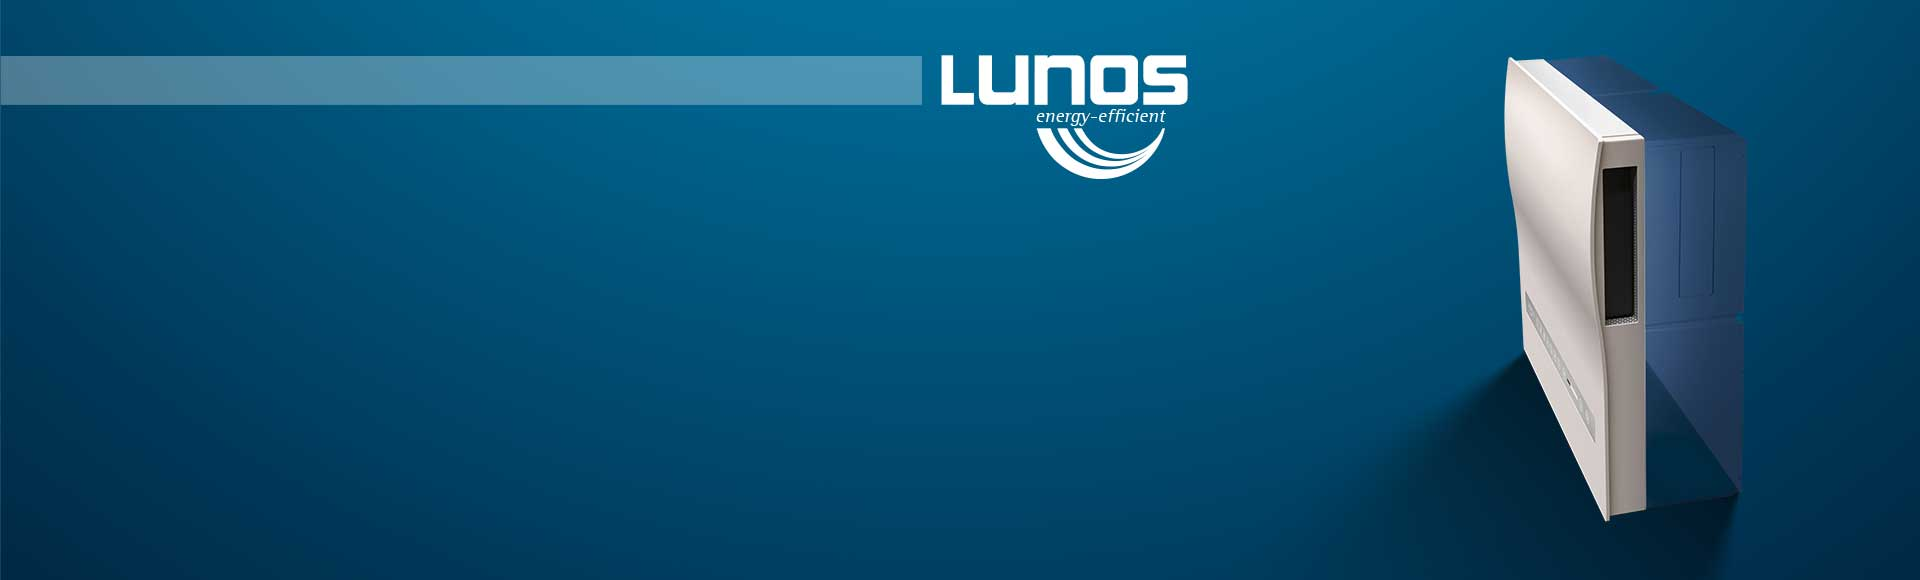 wall-mounted LUNOS module with sleek cover plate design